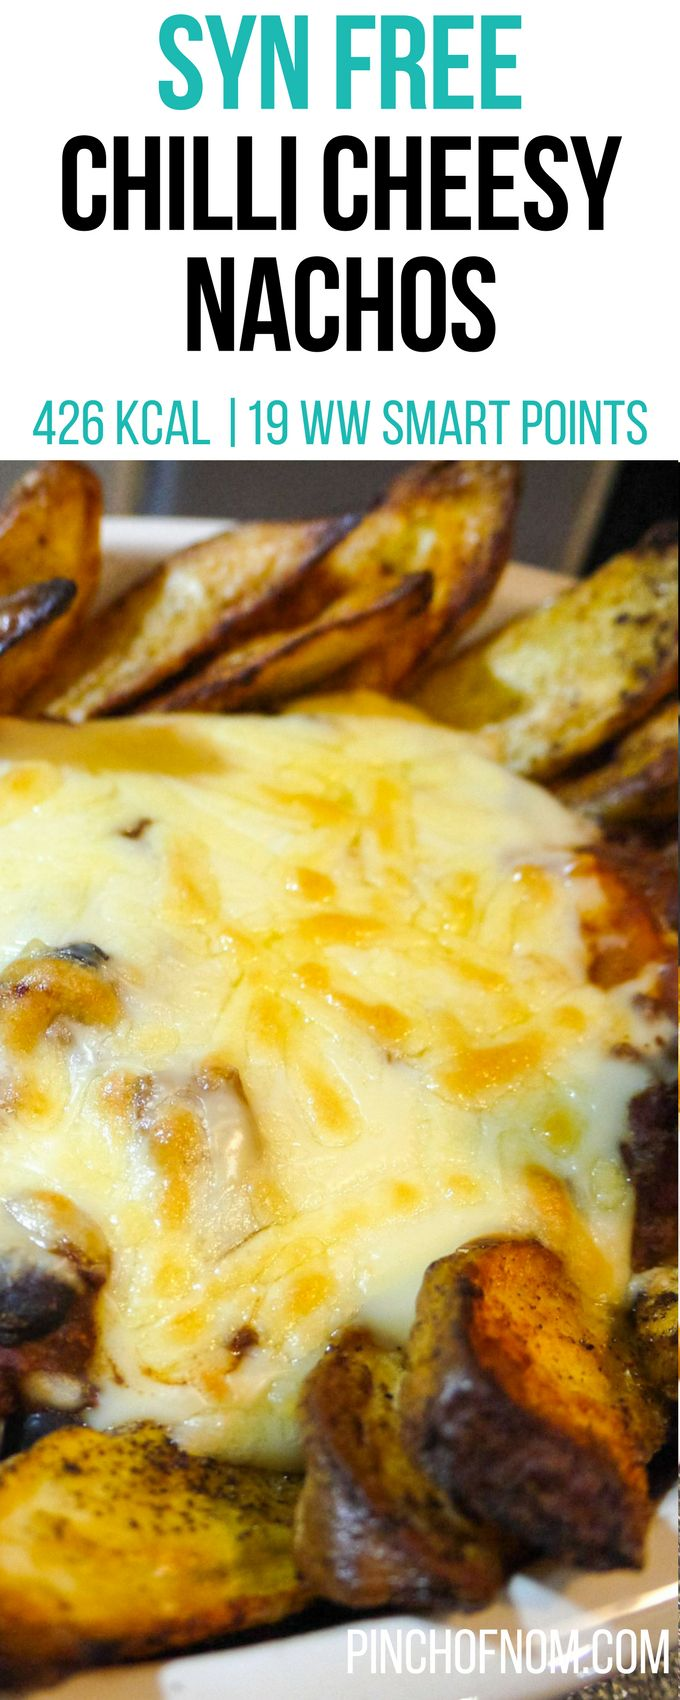 Syn Free Chilli Cheesy Nachos | Pinch Of Nom Slimming World Recipes    426 kcal | Syn Free | 19 Weight Watchers Smart Points